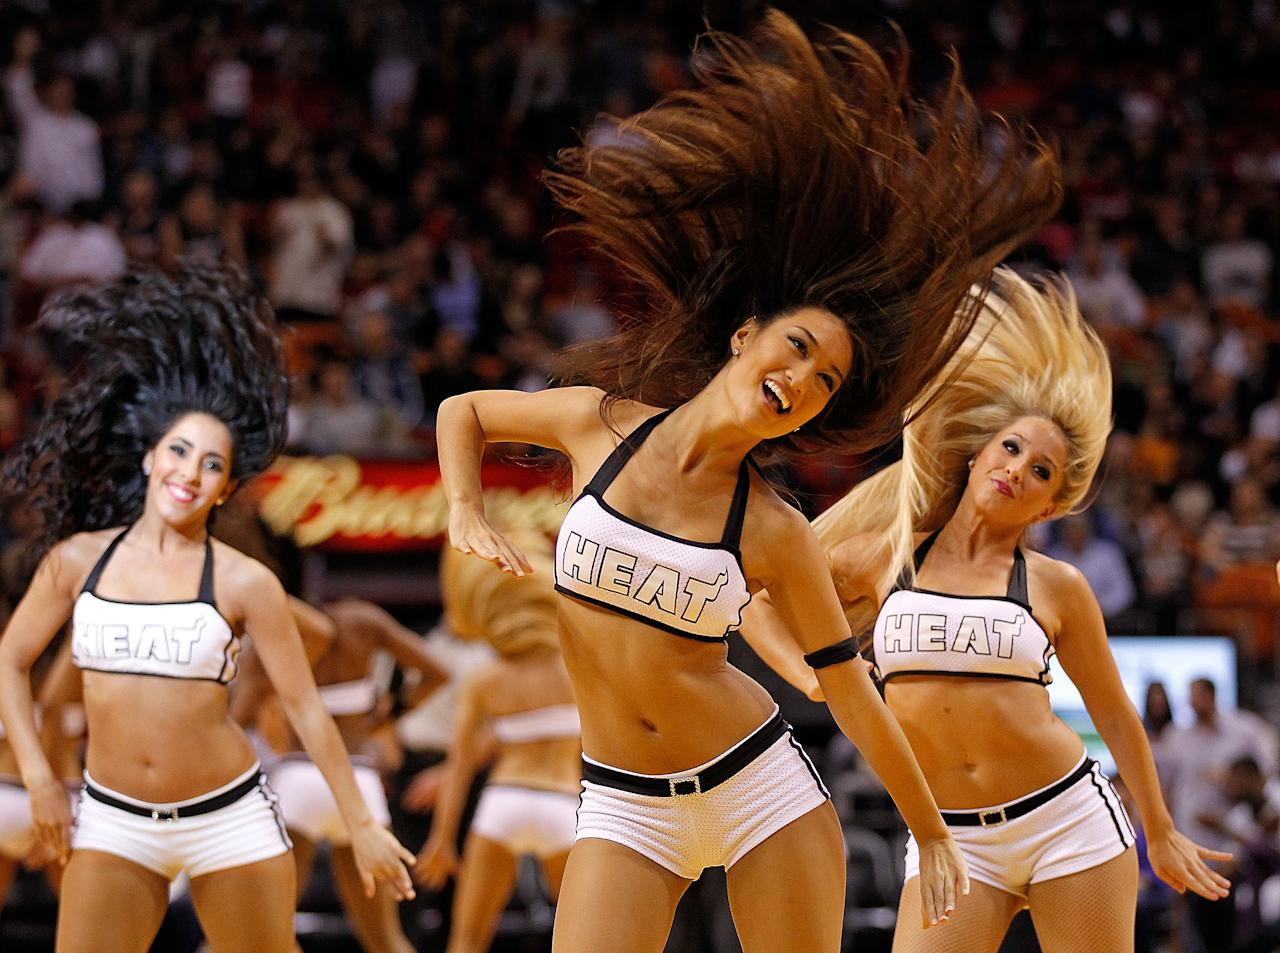 MIAMI, FL - JANUARY 21: The Miami Heat dancers perform during a game against the Philadelphia 76ers at American Airlines Arena on January 21, 2012 in Miami, Florida. NOTE TO USER: User expressly acknowledges and agrees that, by downloading and/or using this Photograph, User is consenting to the terms and conditions of the Getty Images License Agreement.  (Photo by Mike Ehrmann/Getty Images)